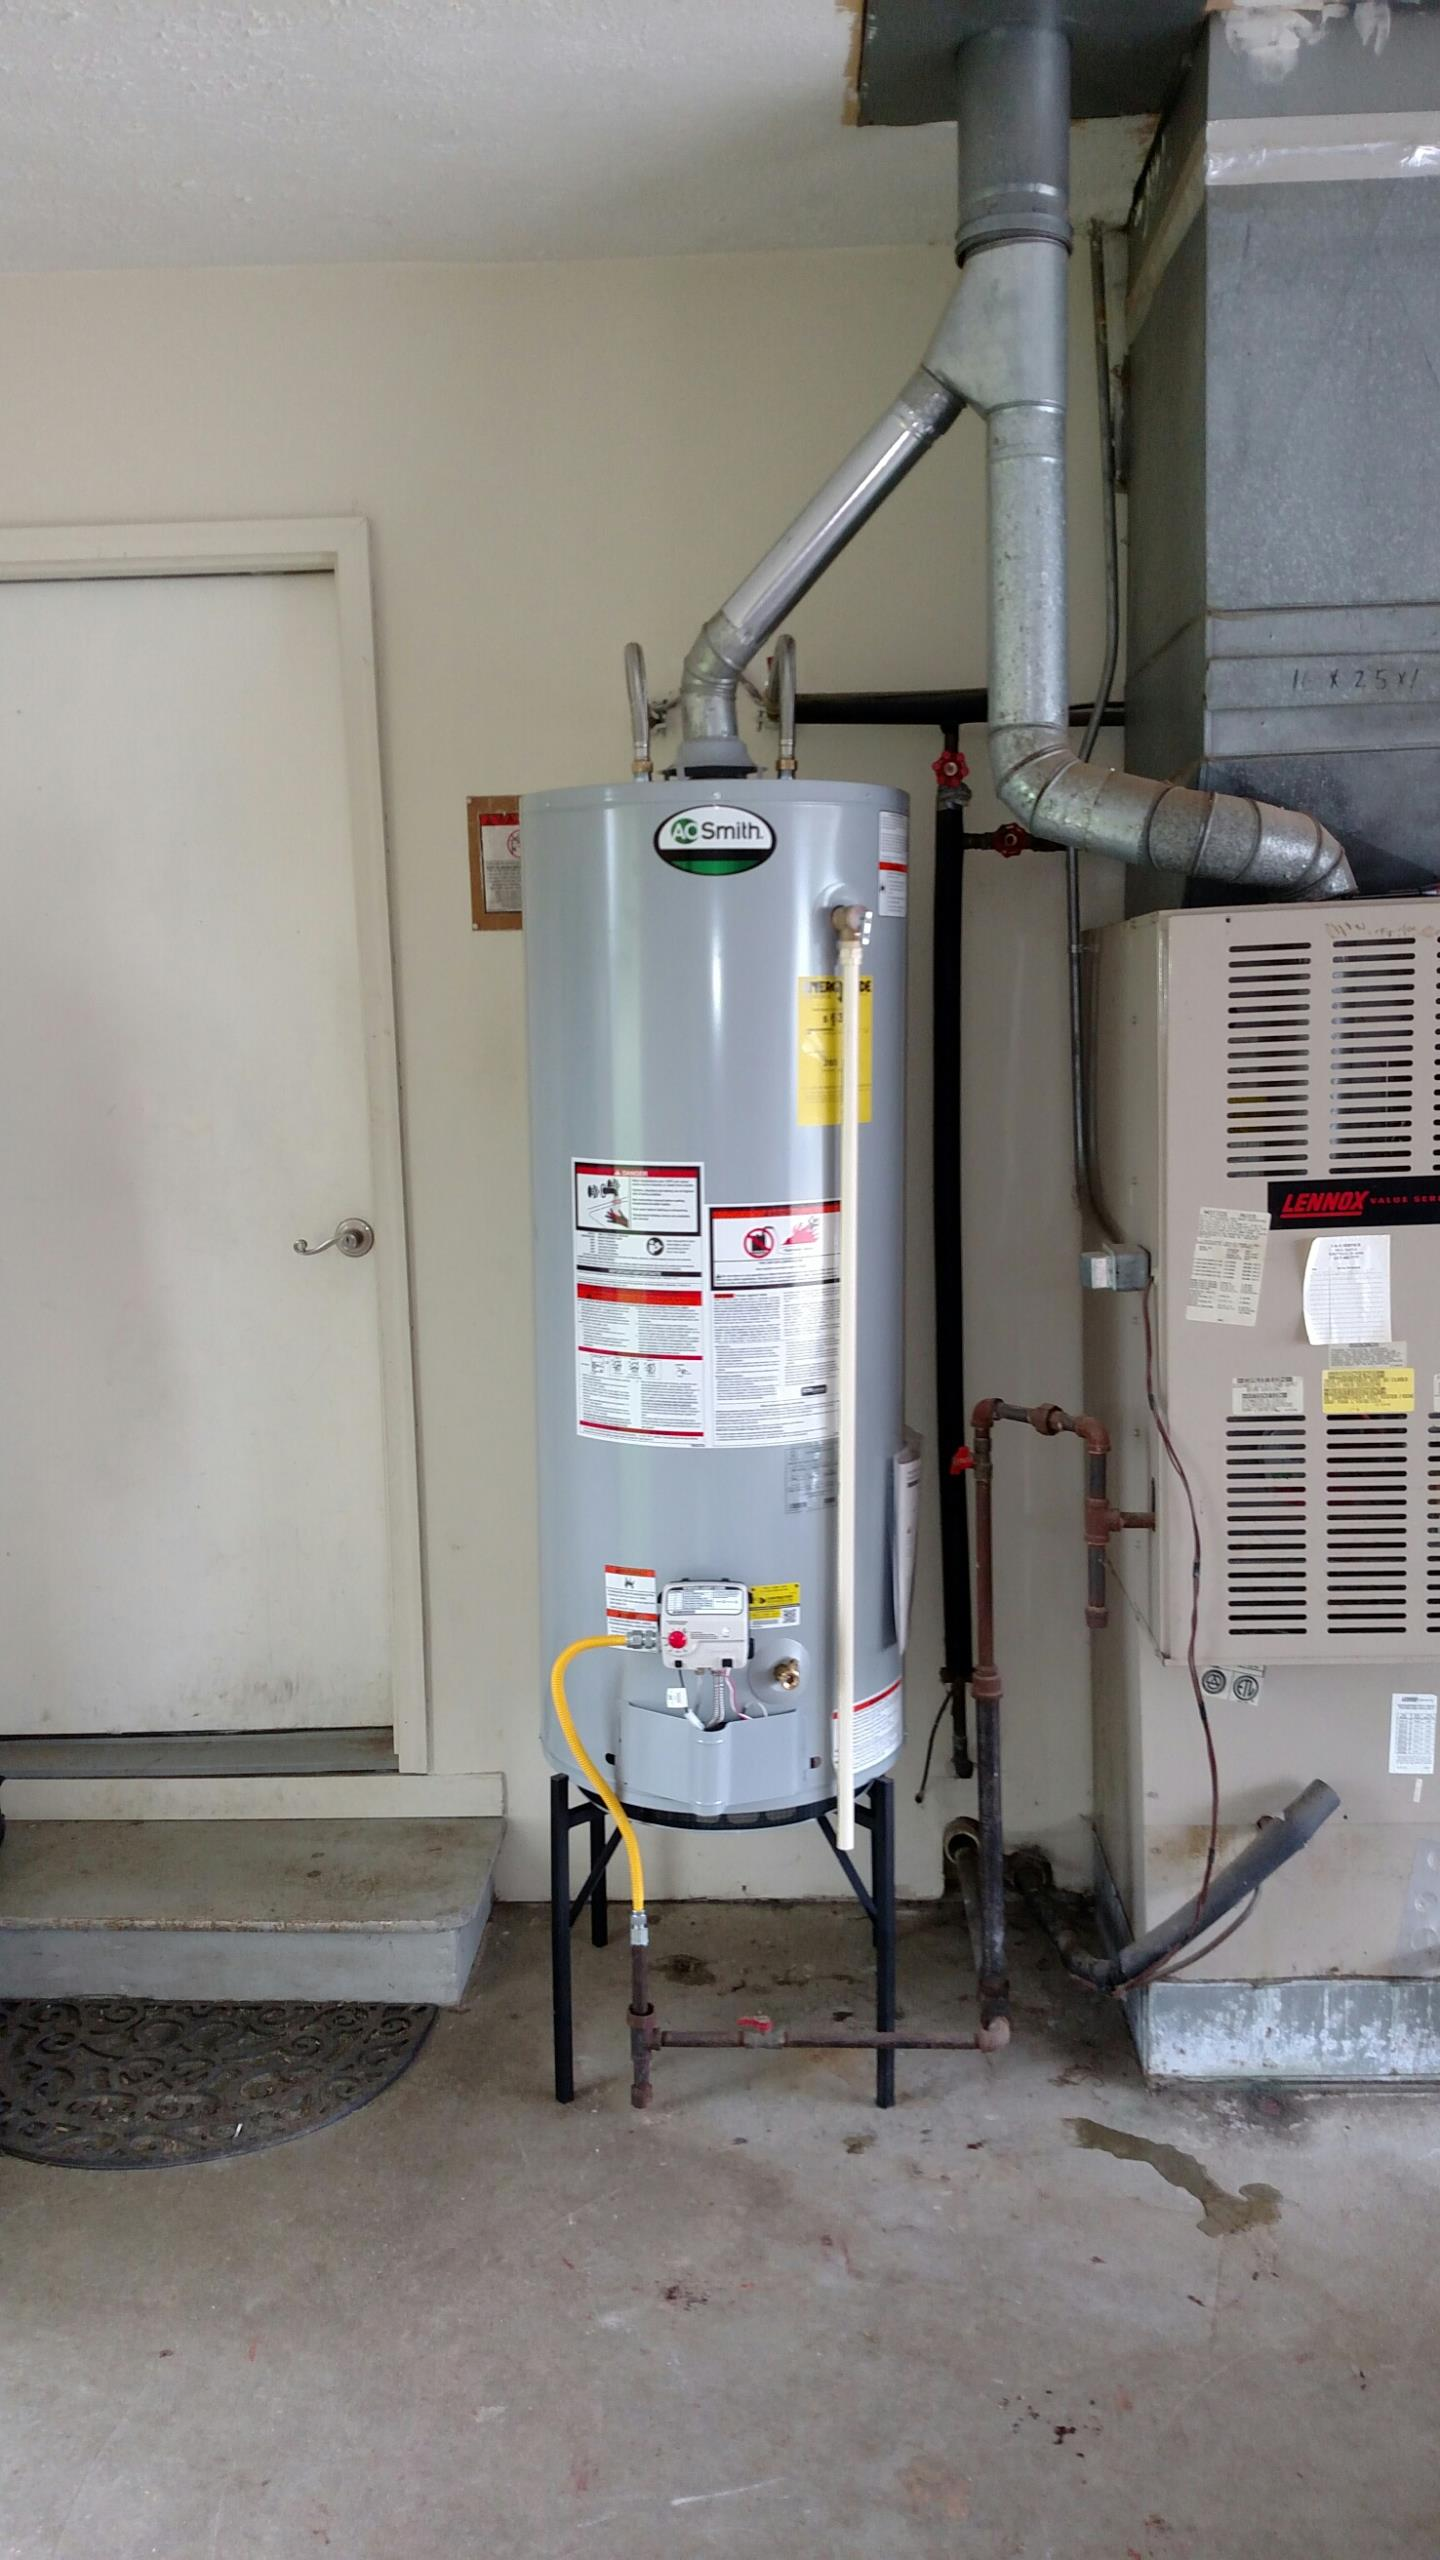 Fortville, IN - Drain water heater remove gas line remove glue replace water heater install new gas line install new flu